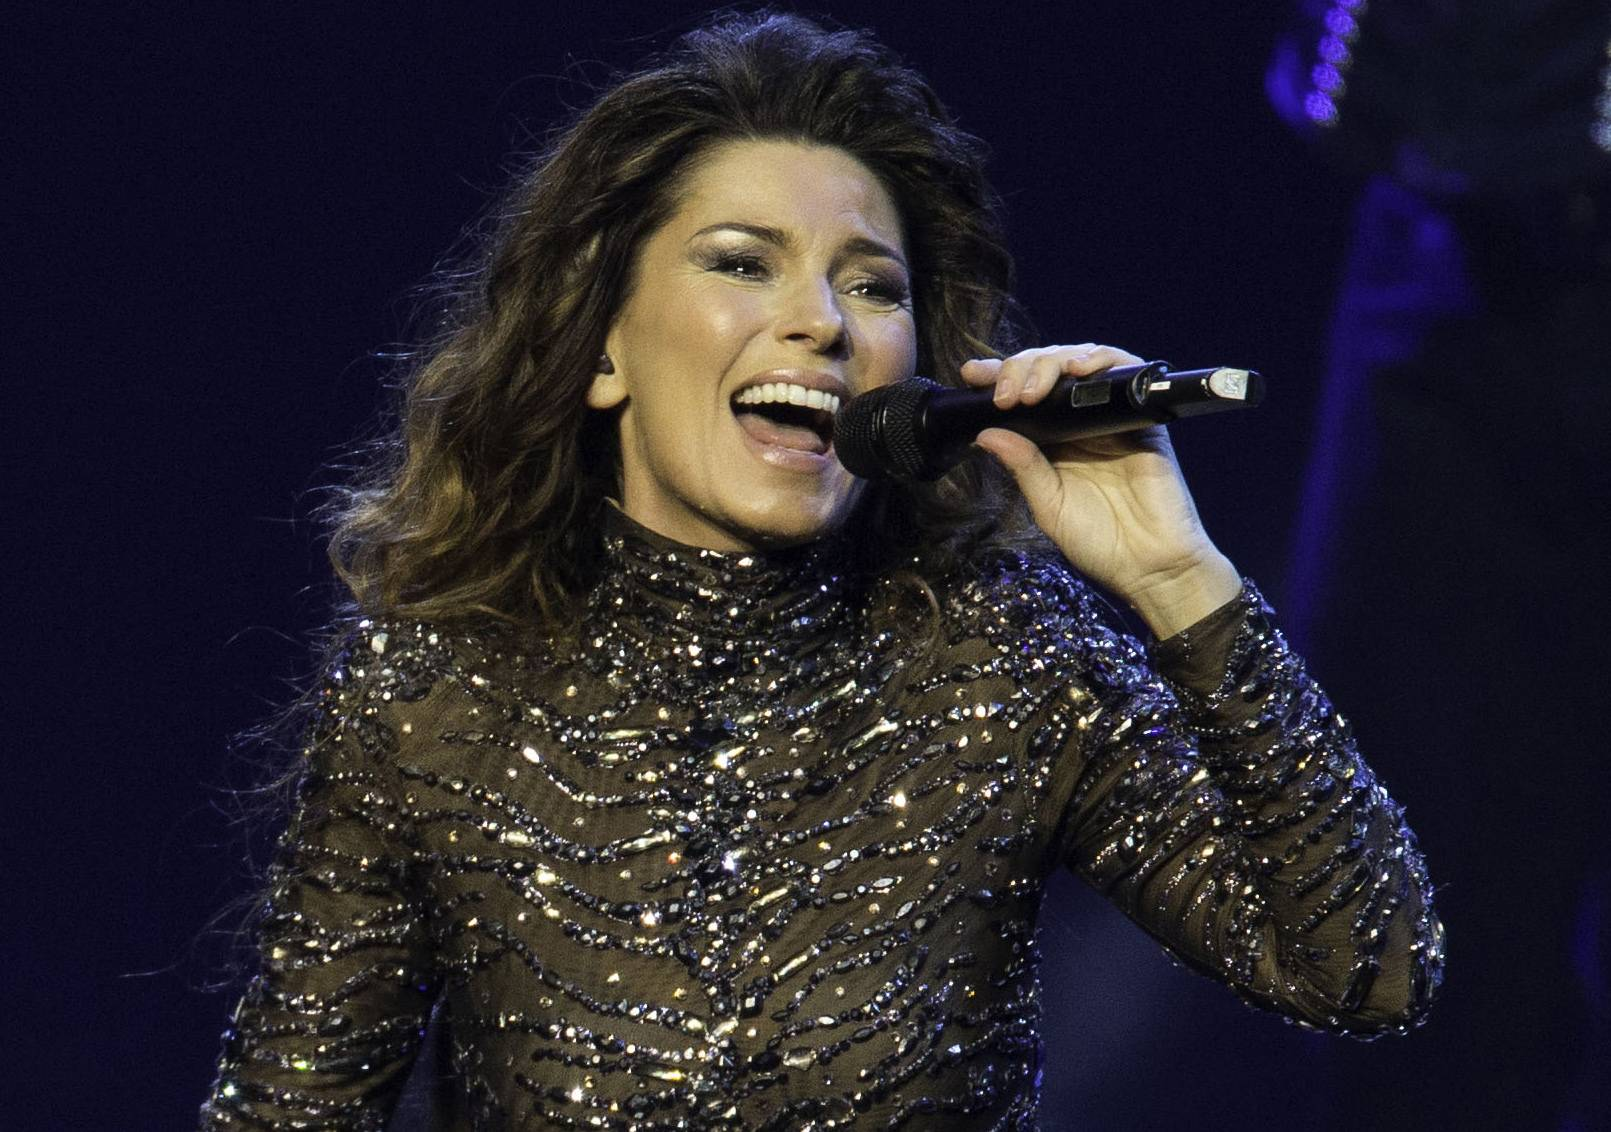 Shania Twain says she'll end her residency at The Colosseum at Caesars Palace in Las Vegas with a final show Dec. 13, two years after she began performing at resort.